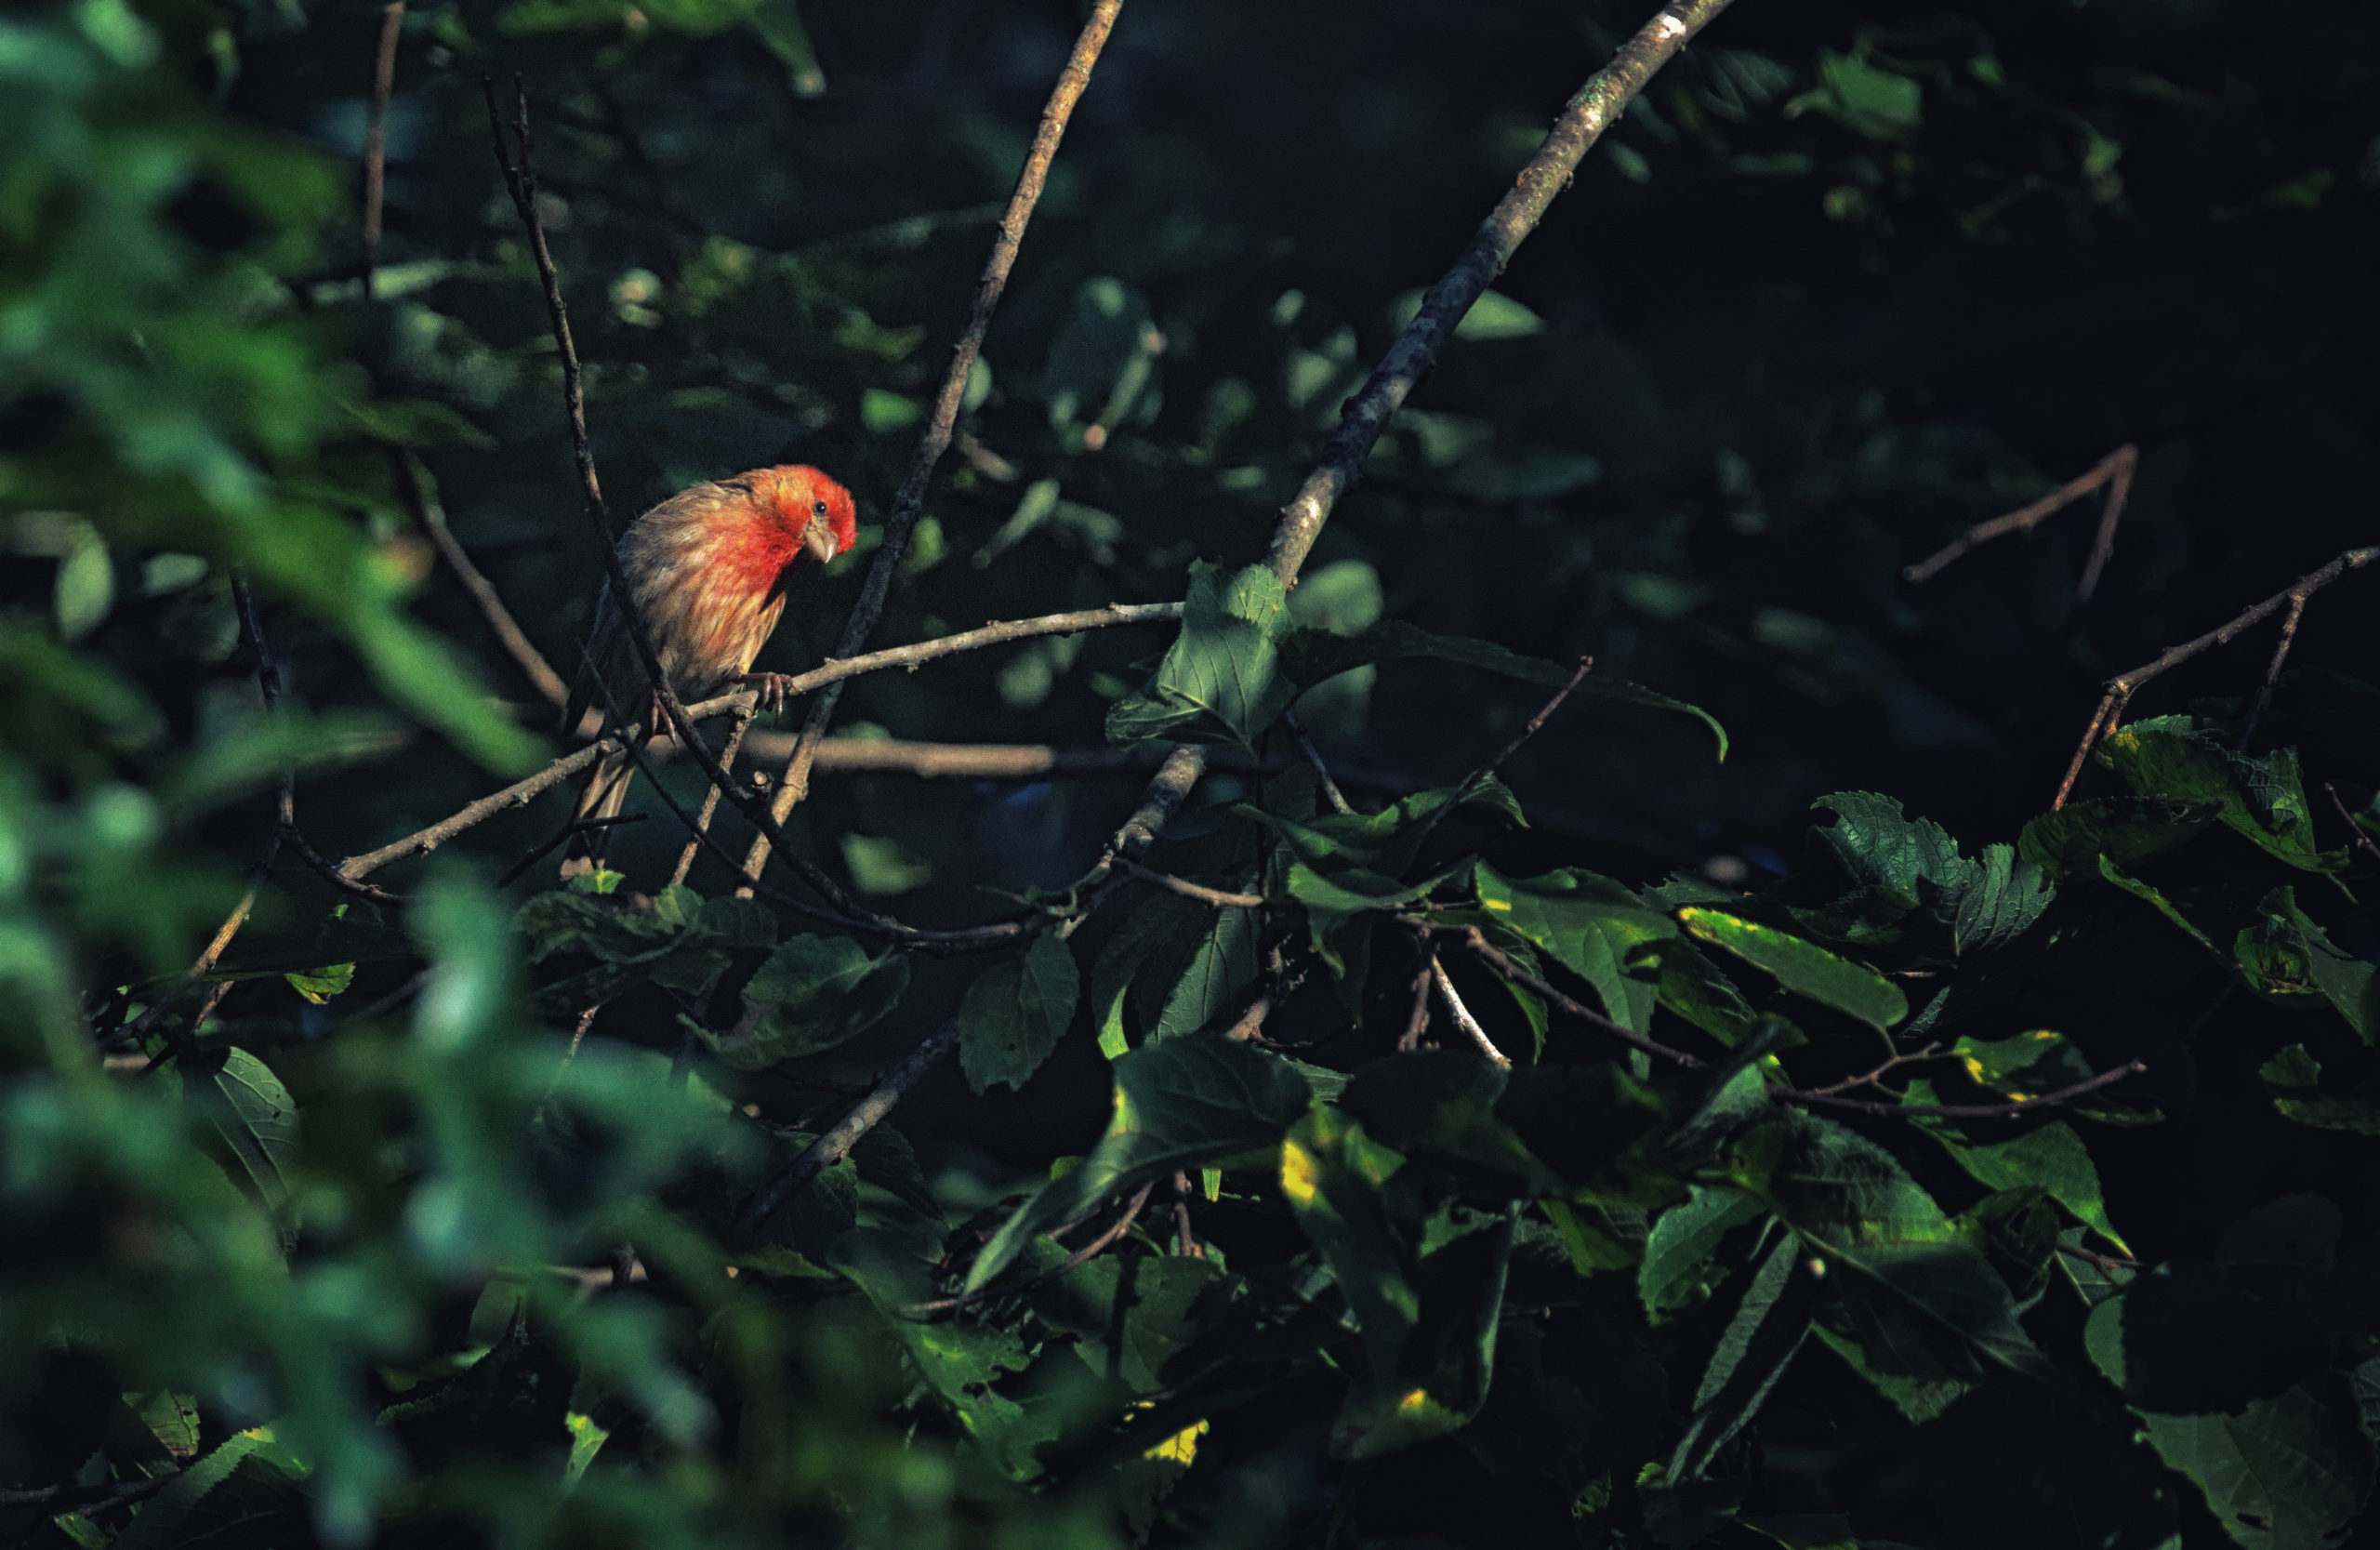 A house finch sits on a tree branch, surrounded by leaves.